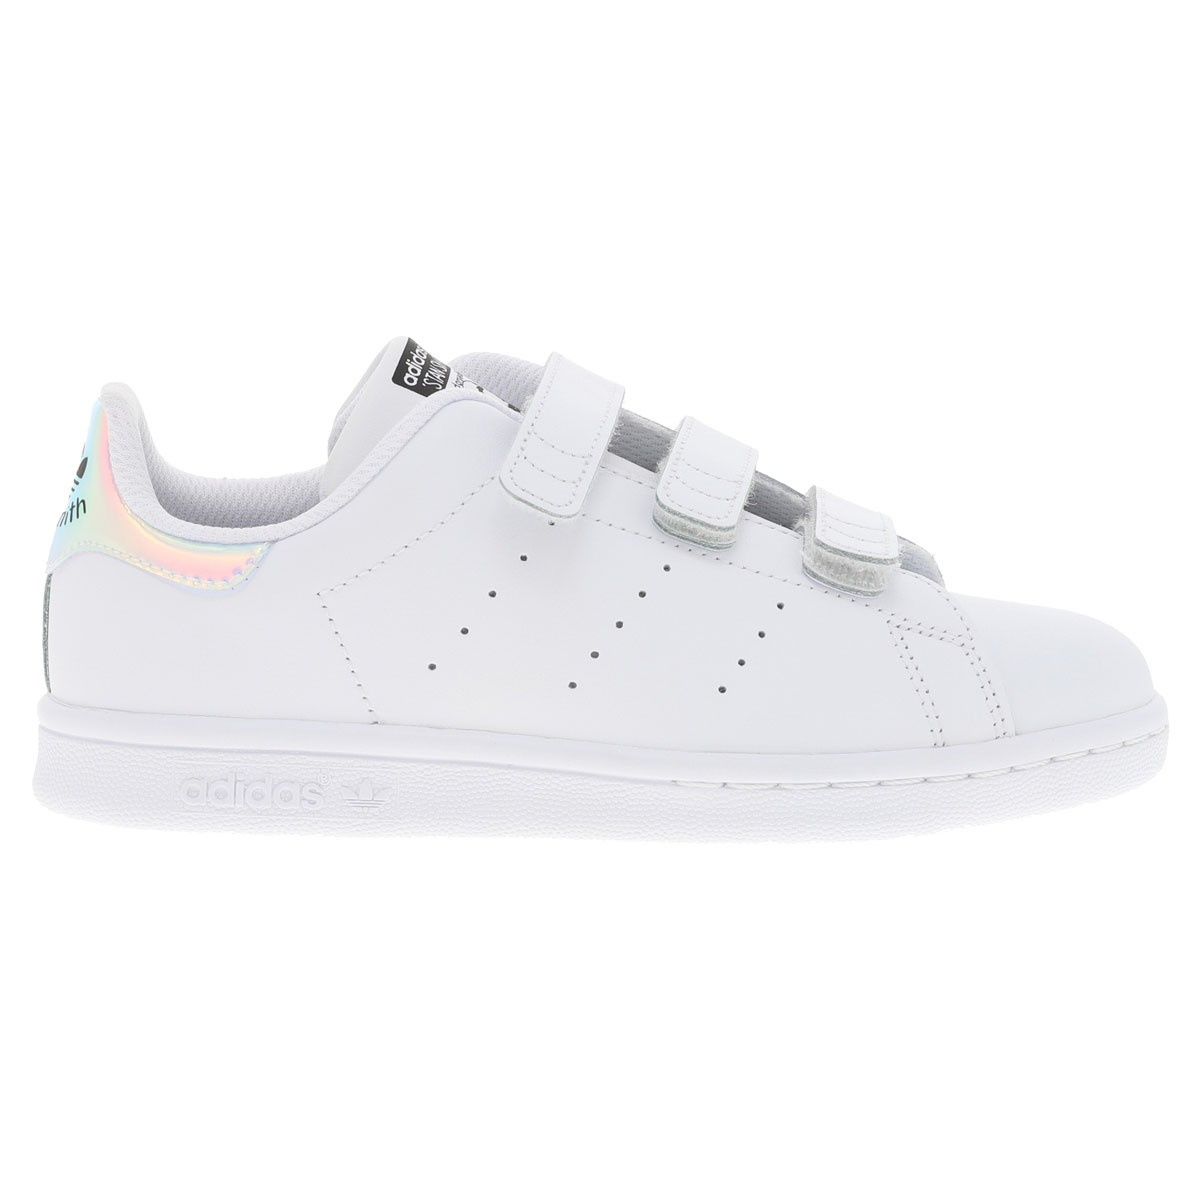 basquets stan smith